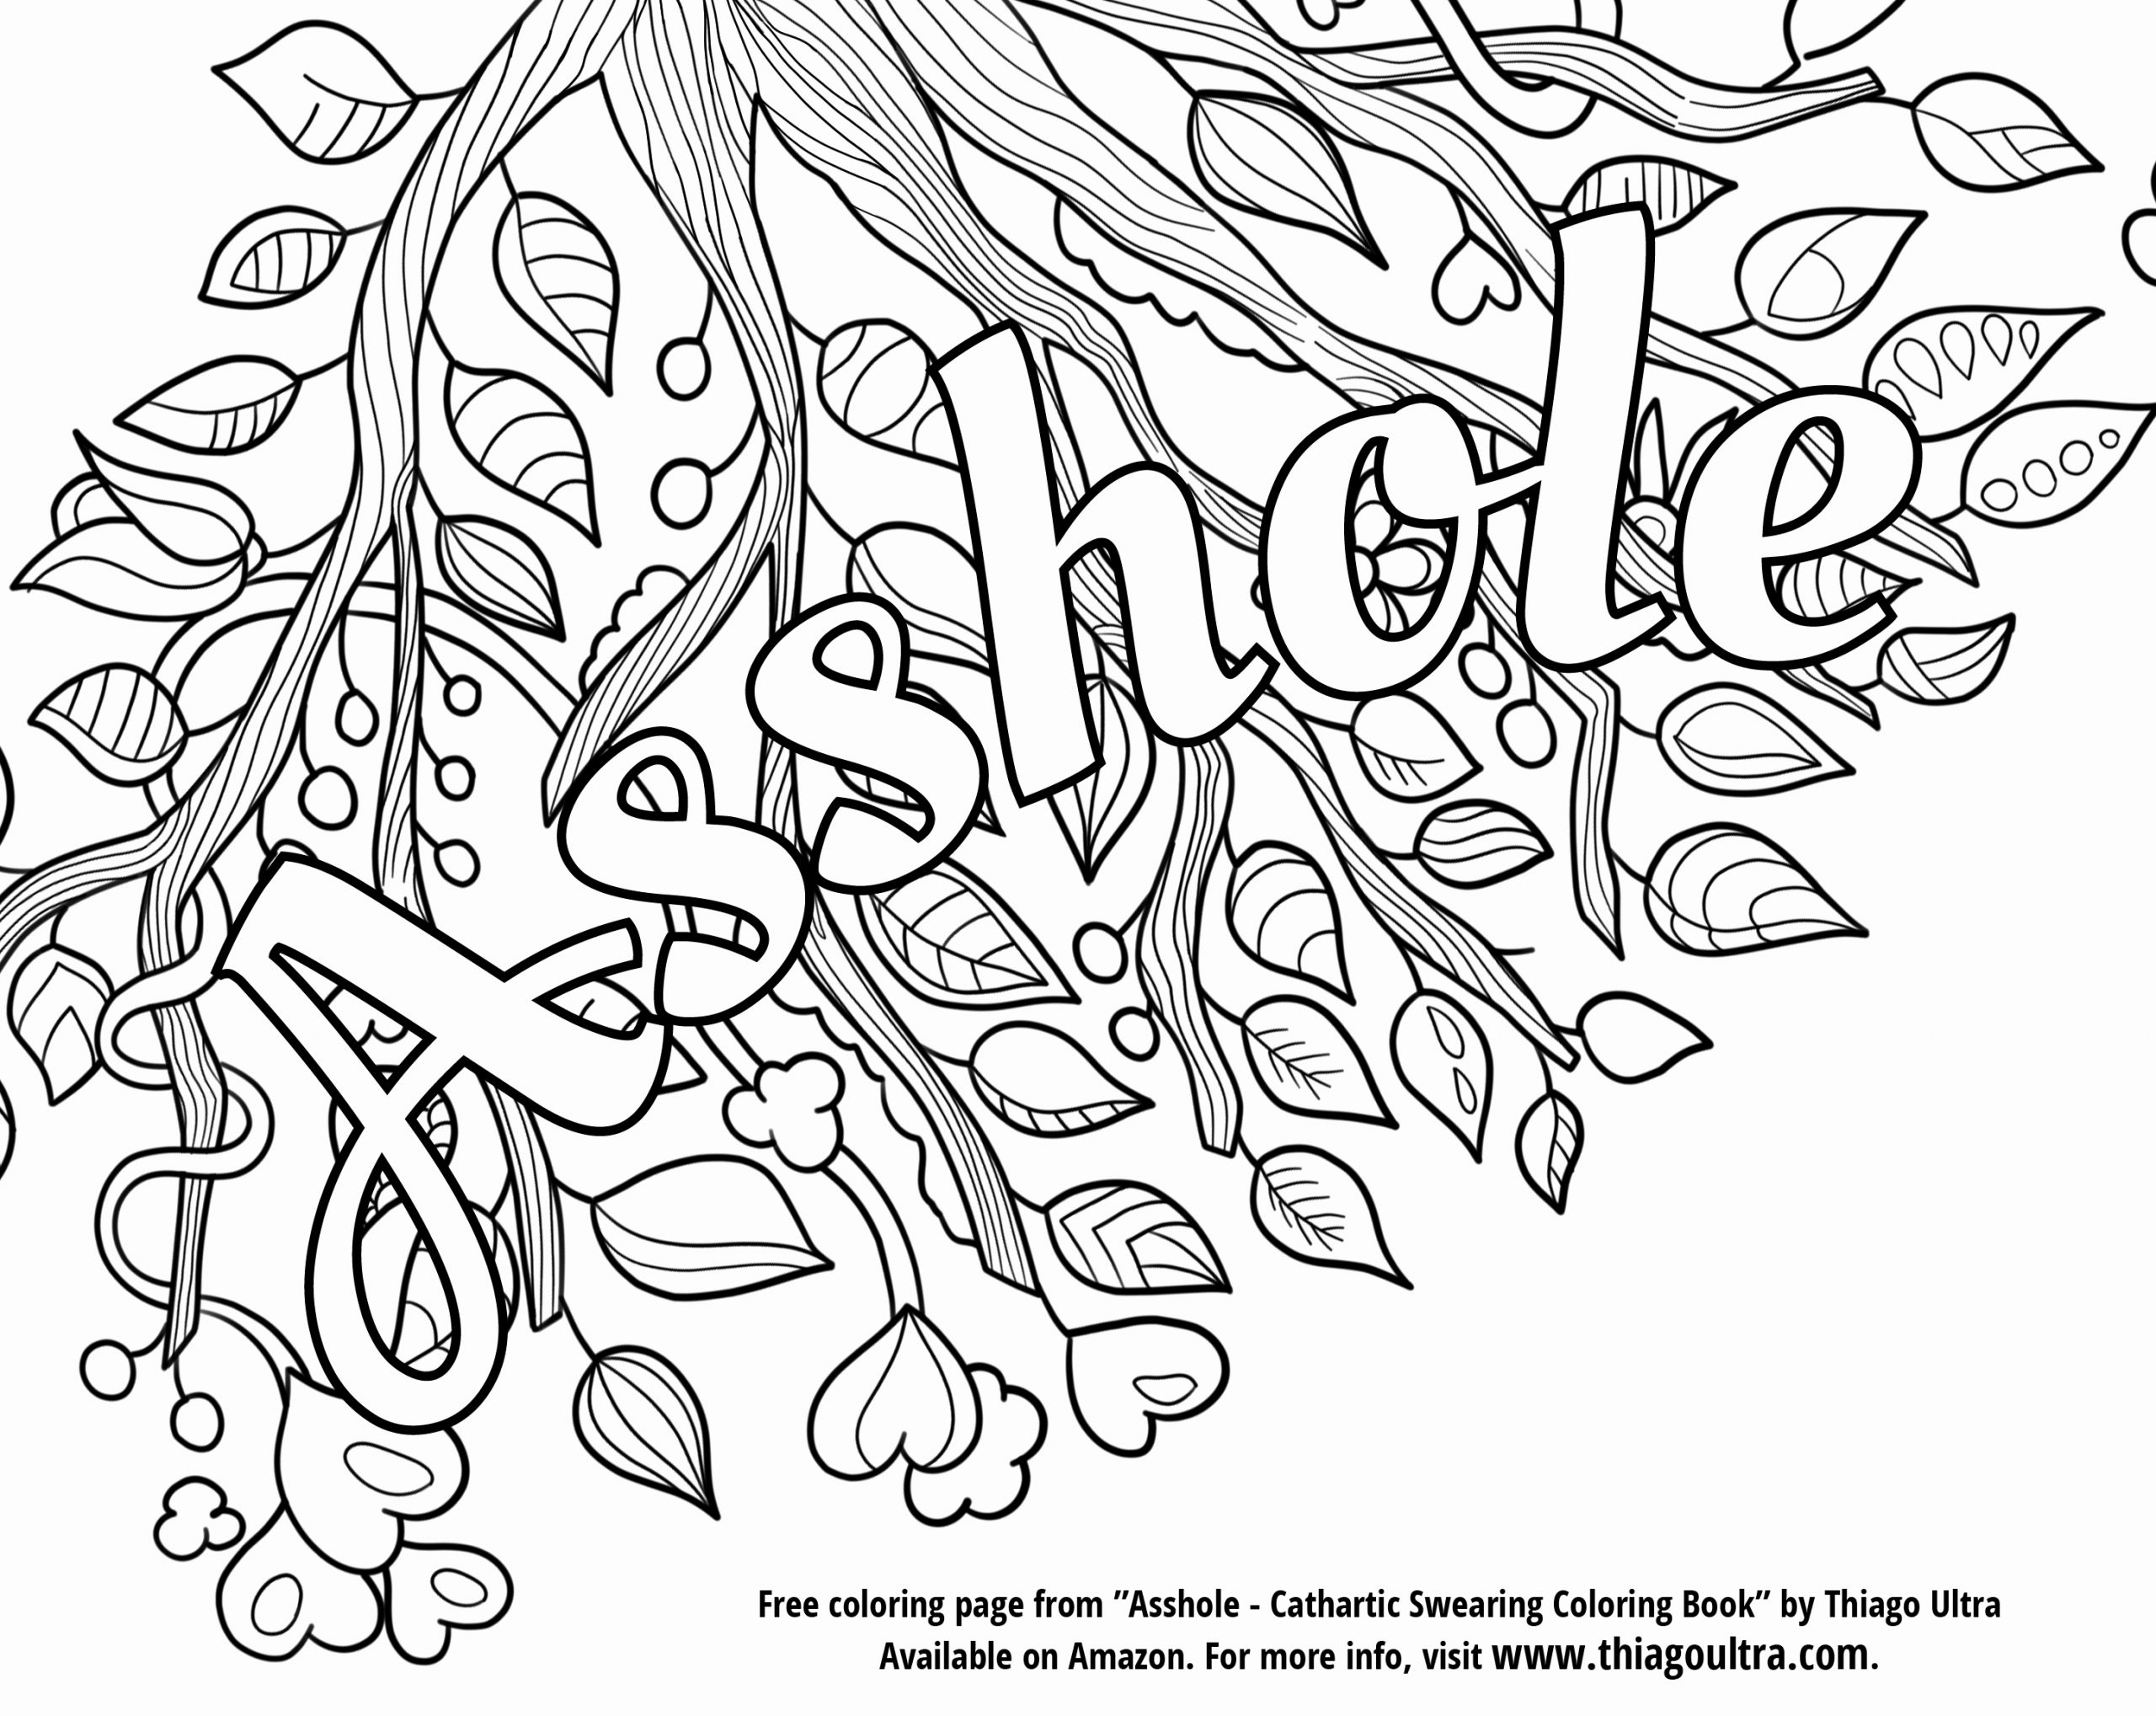 The Swear Words Coloring Book Awesome Free Printable Coloring Page Archives  Thiago Ultra … in 2020 | Curse word coloring book, Swear word coloring  book, Words coloring book